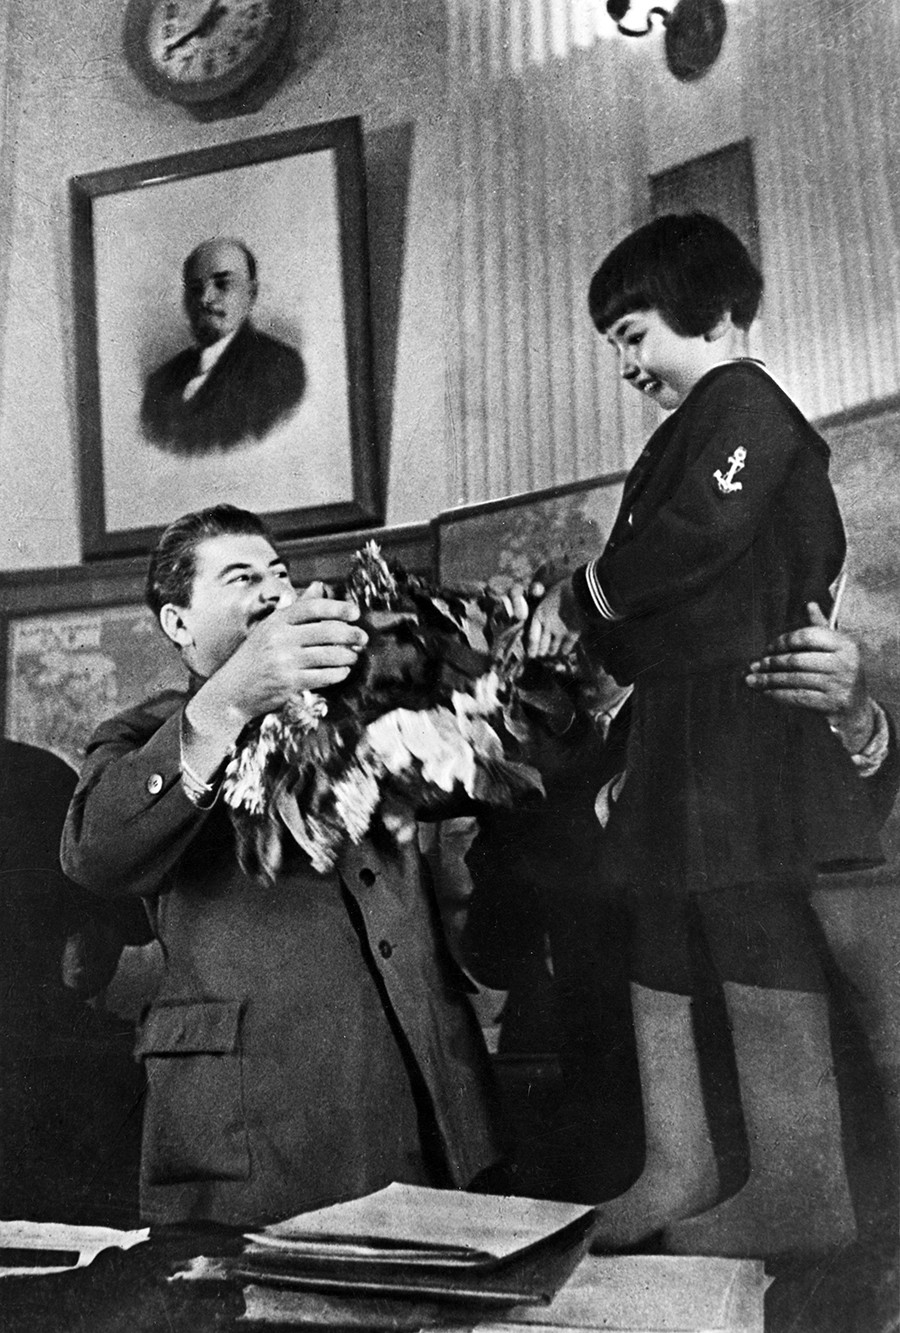 Joseph Stalin receiving a bouquet of flowers from Engelsina (Gelya) Markizova.